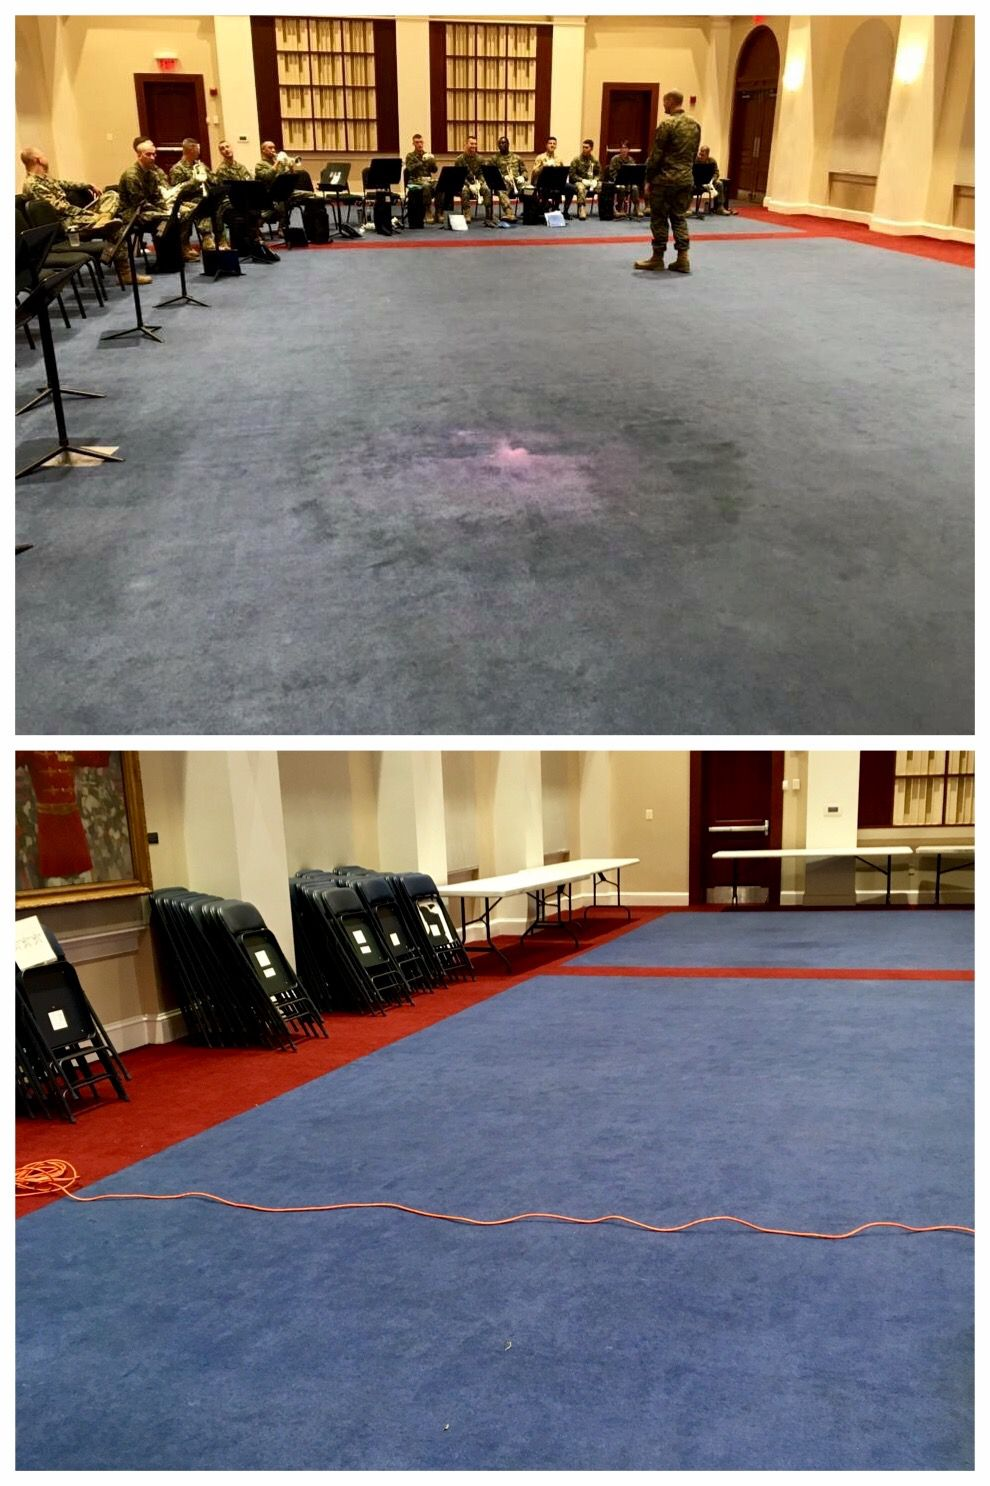 About Carpet Dyeing   Carpet Dyeing by Colorful Carpets About Carpet Dyeing